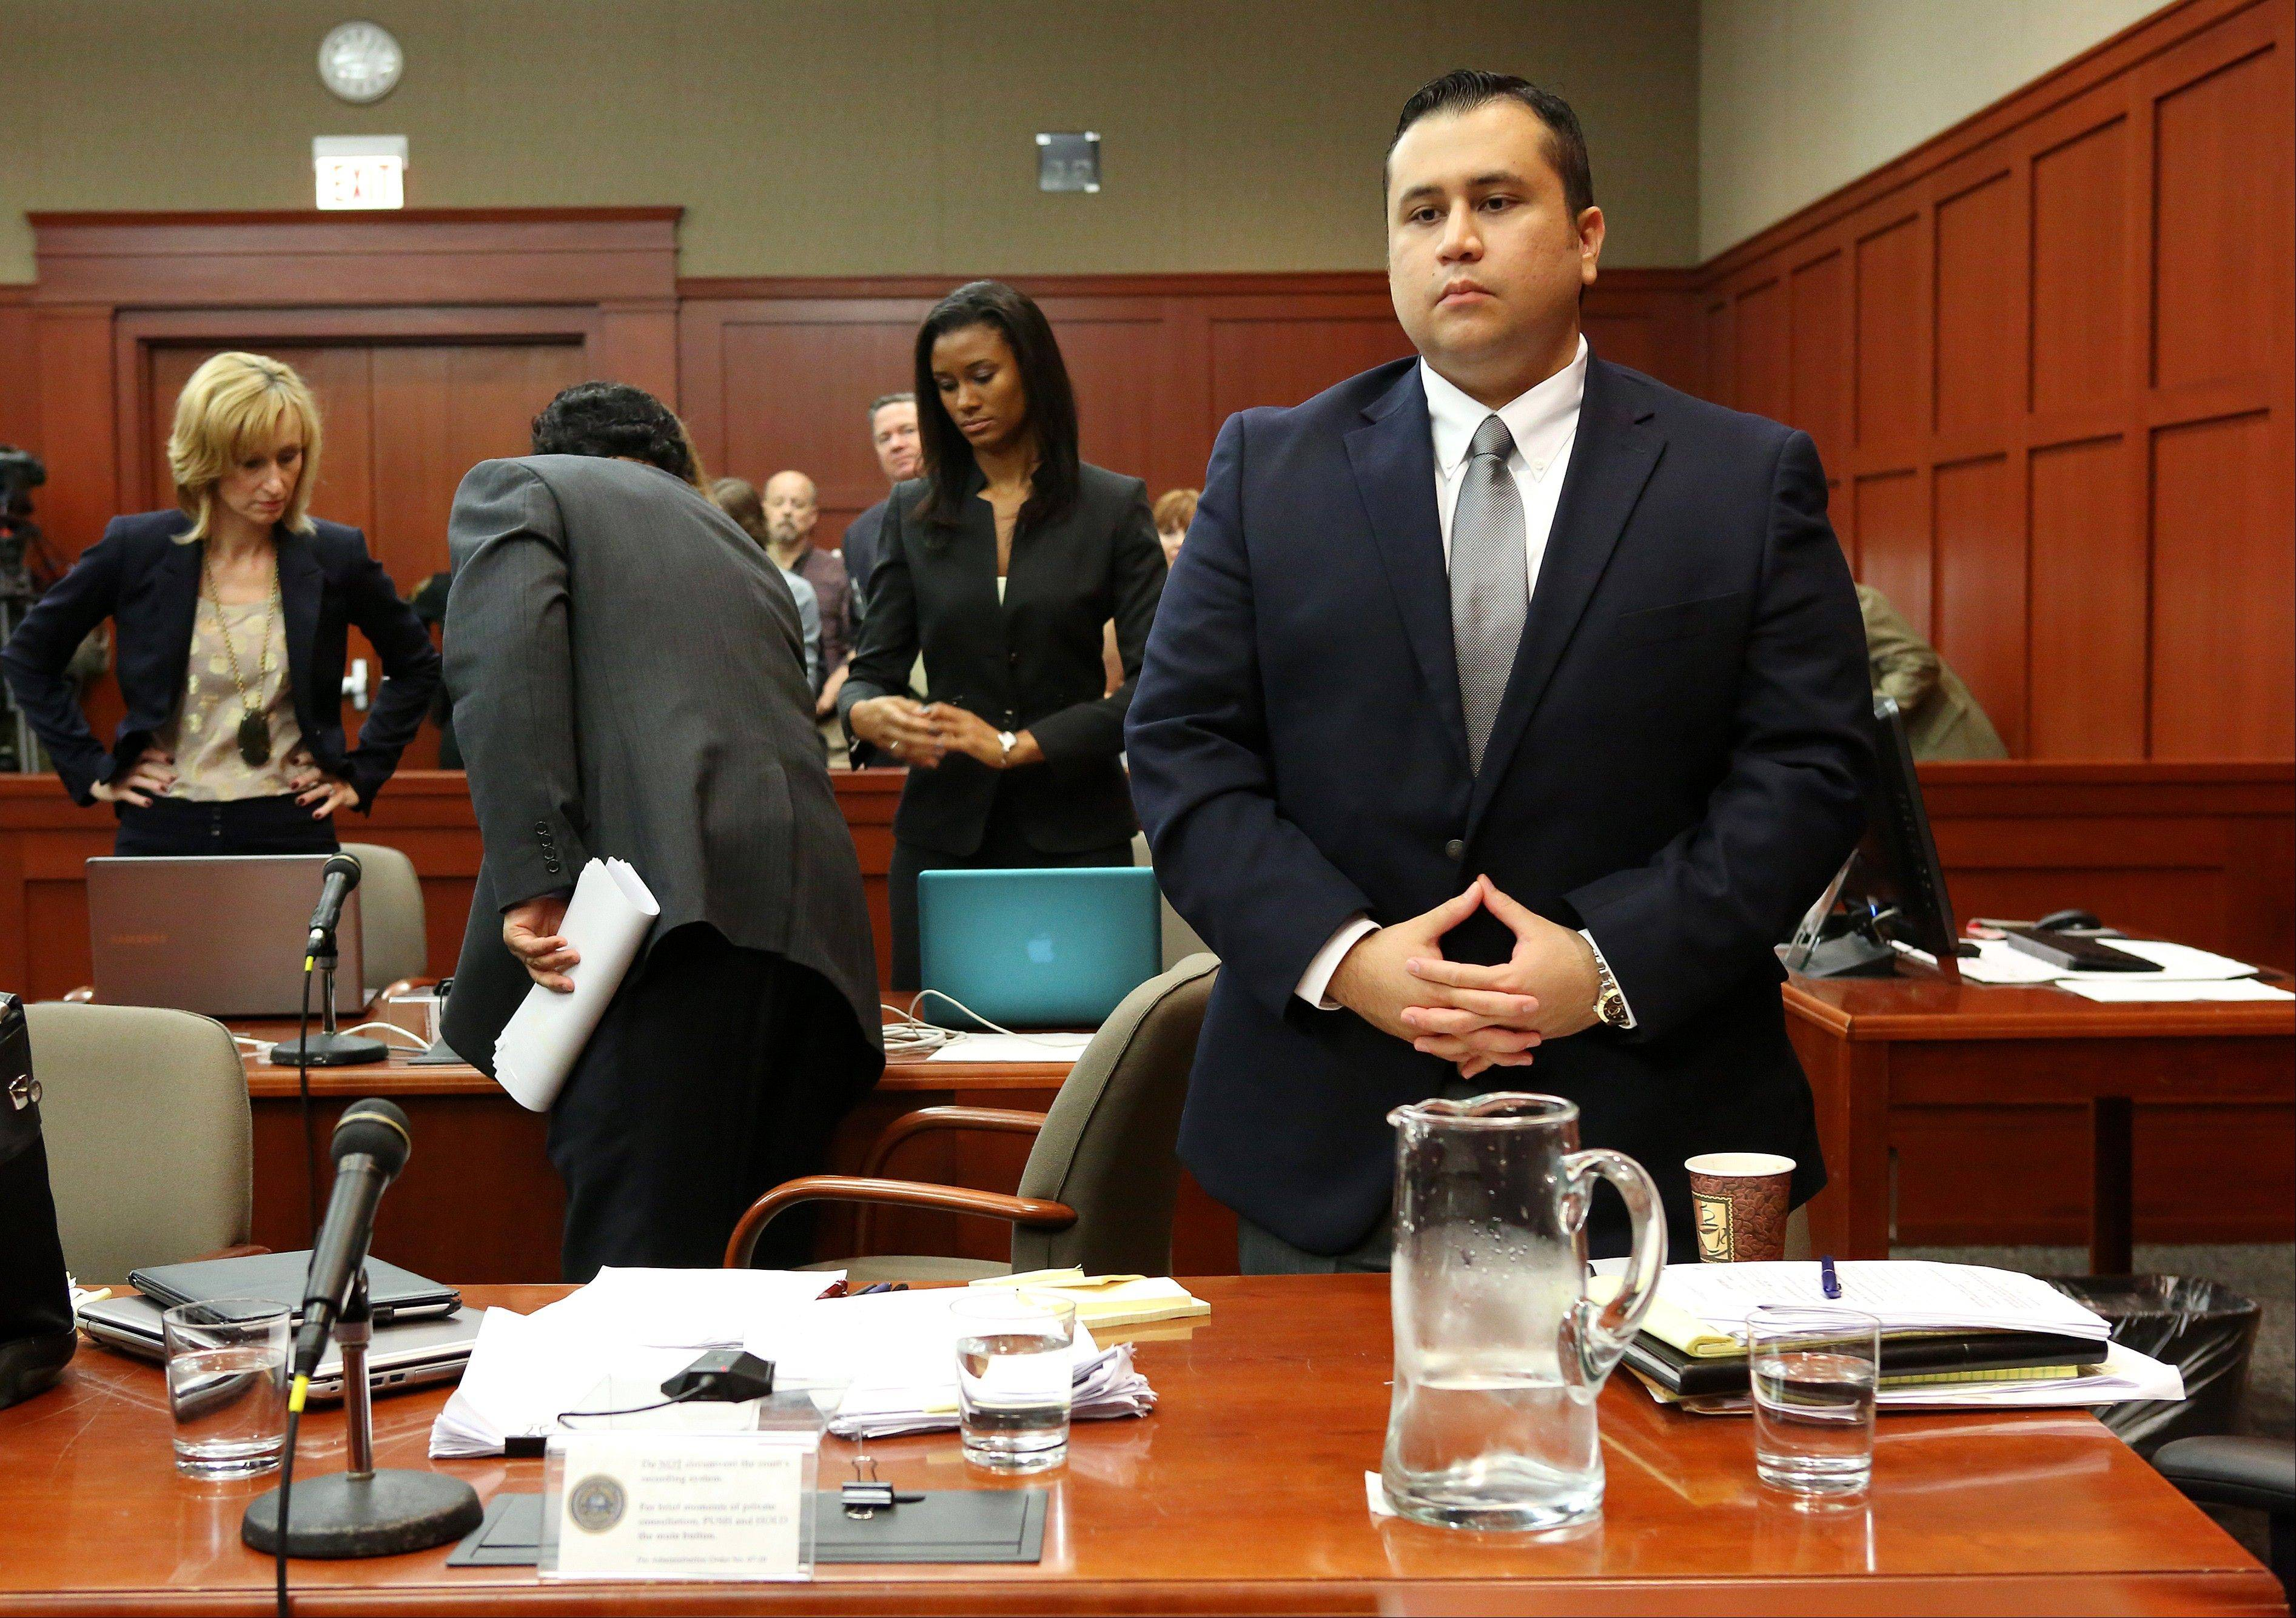 George Zimmerman stands in Seminole circuit court prior to the fourth day of his trial, in Sanford, Fla., Thursday.